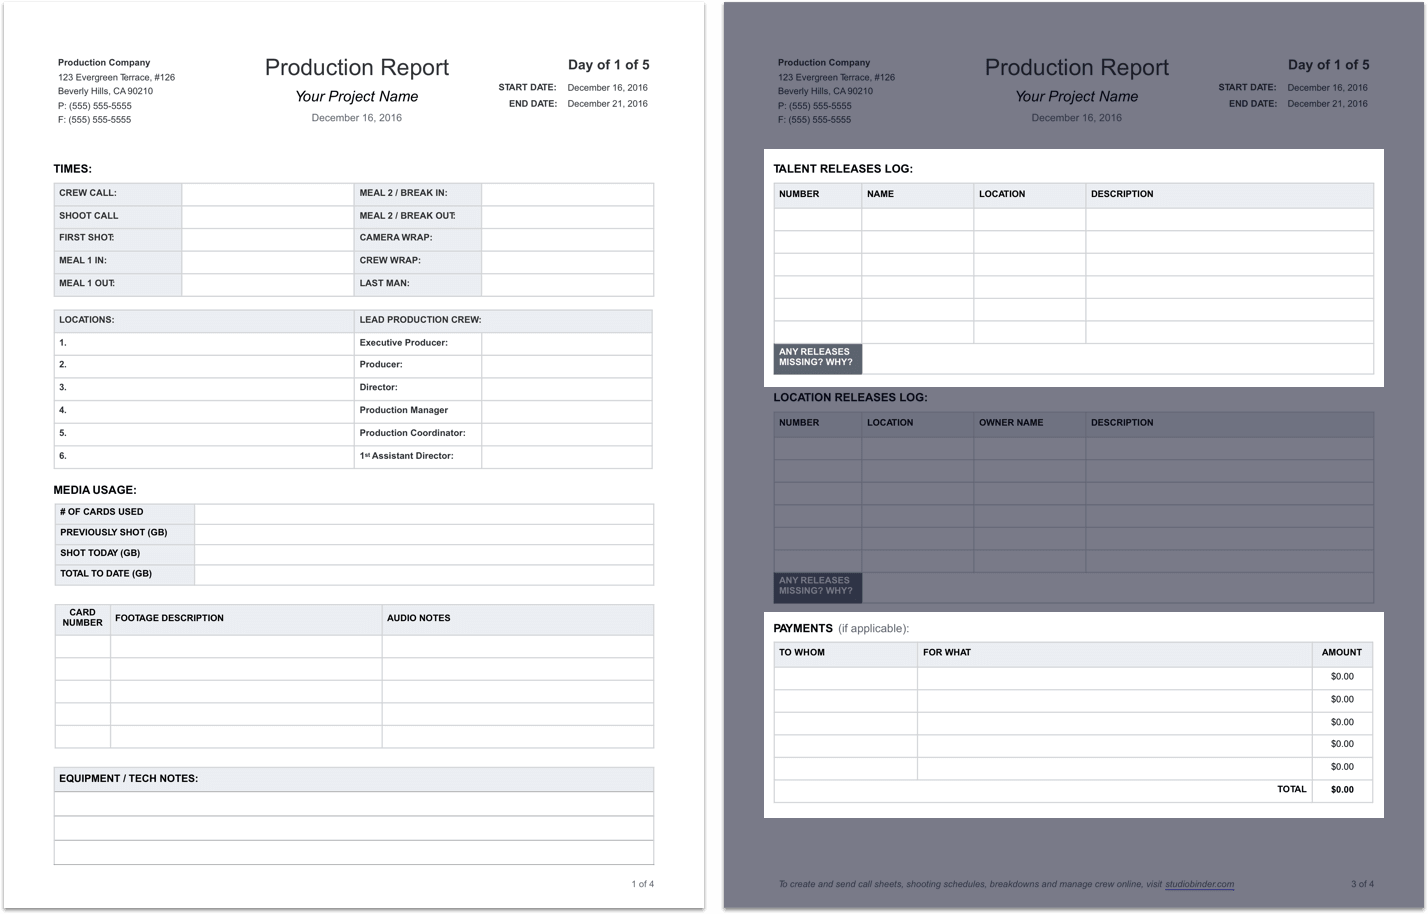 Daily Production Report Template - Tear Sheet - Studiobinder